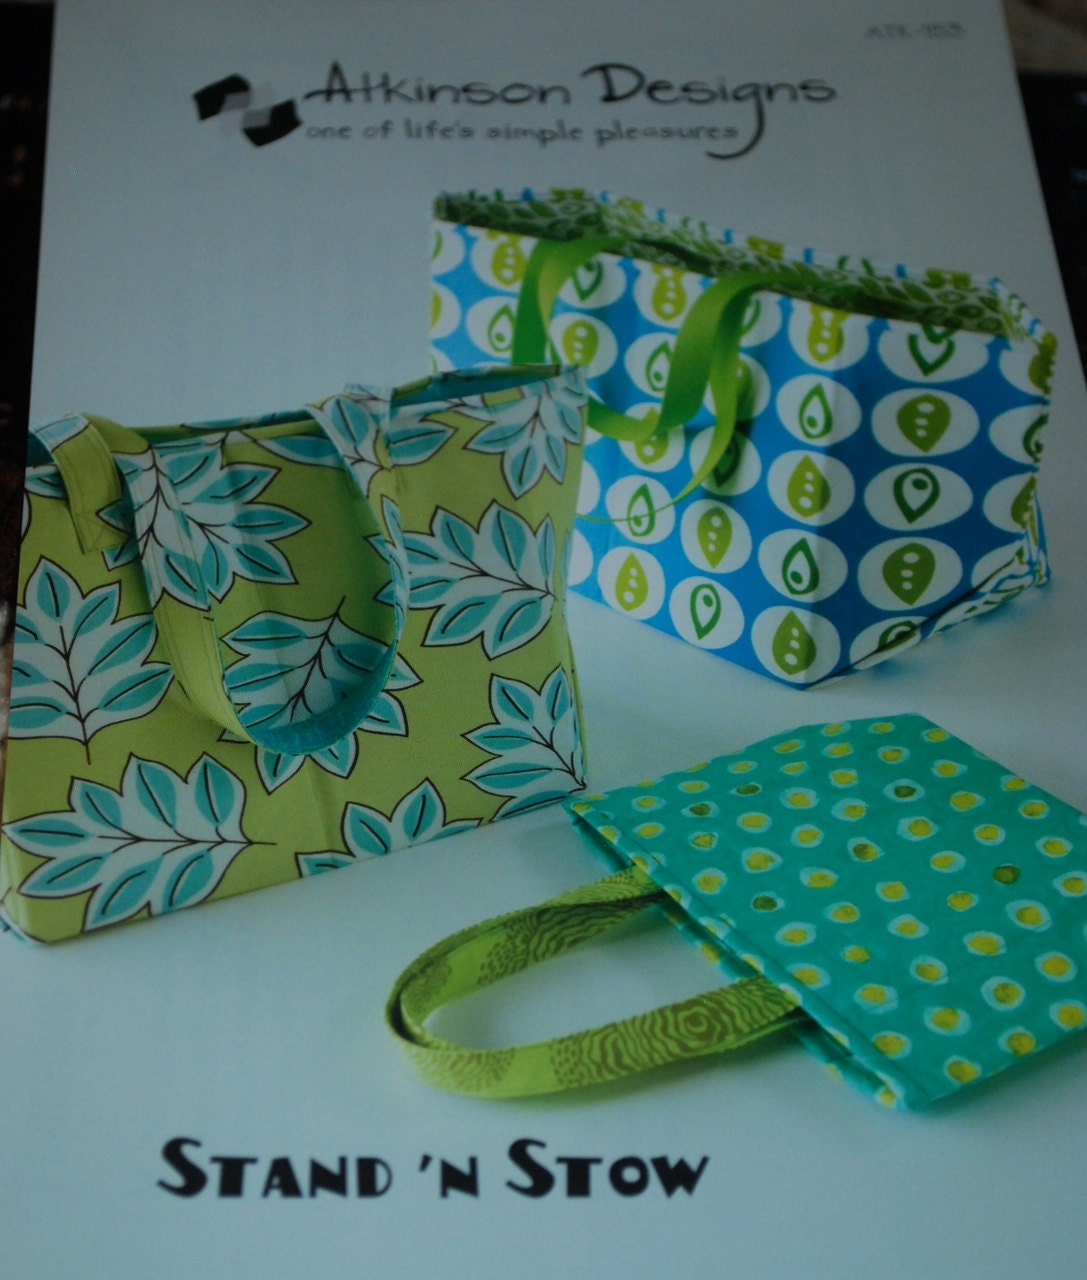 Atkinson Designs Stand N Stow : Stand n stow bag pattern atk by atkinson designs free